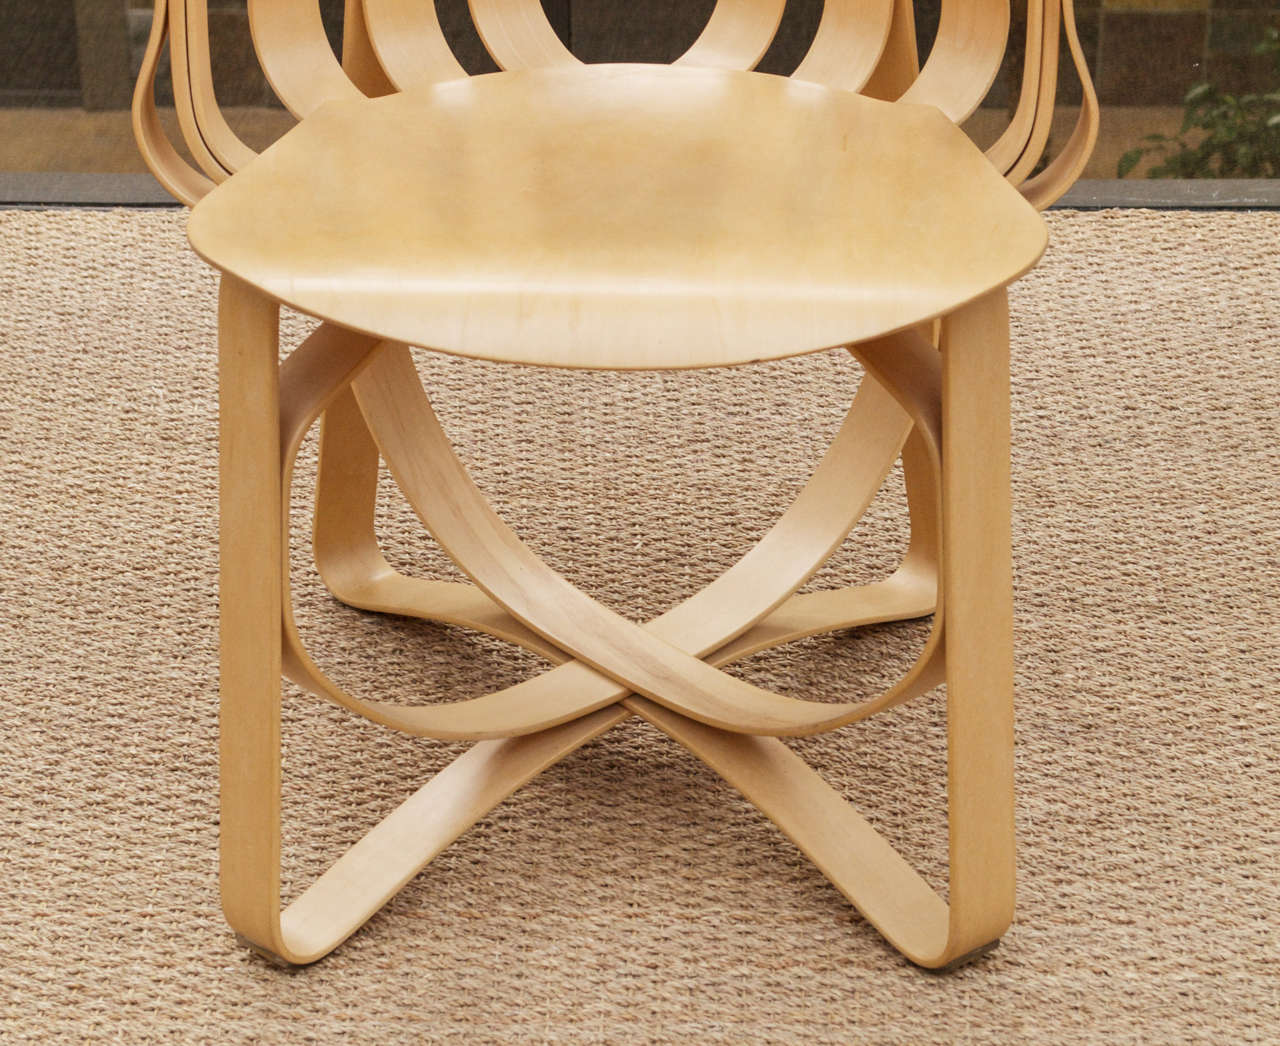 70s chairs is frank o gehry s cardboard chair wiggle side chair - Hat Trick Armchair By Frank Gehry For Knoll 3